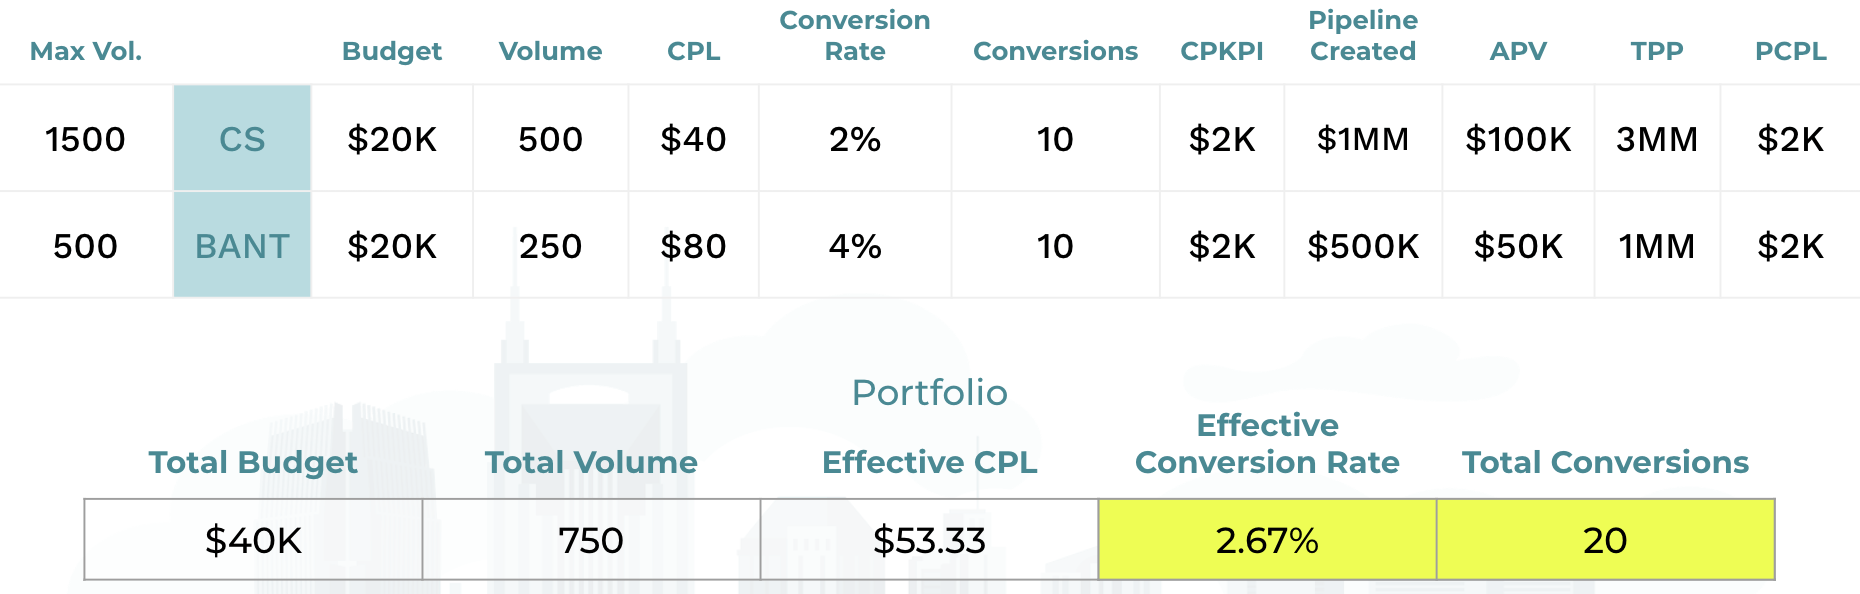 calculate the effective conversion rate for your portfolio.